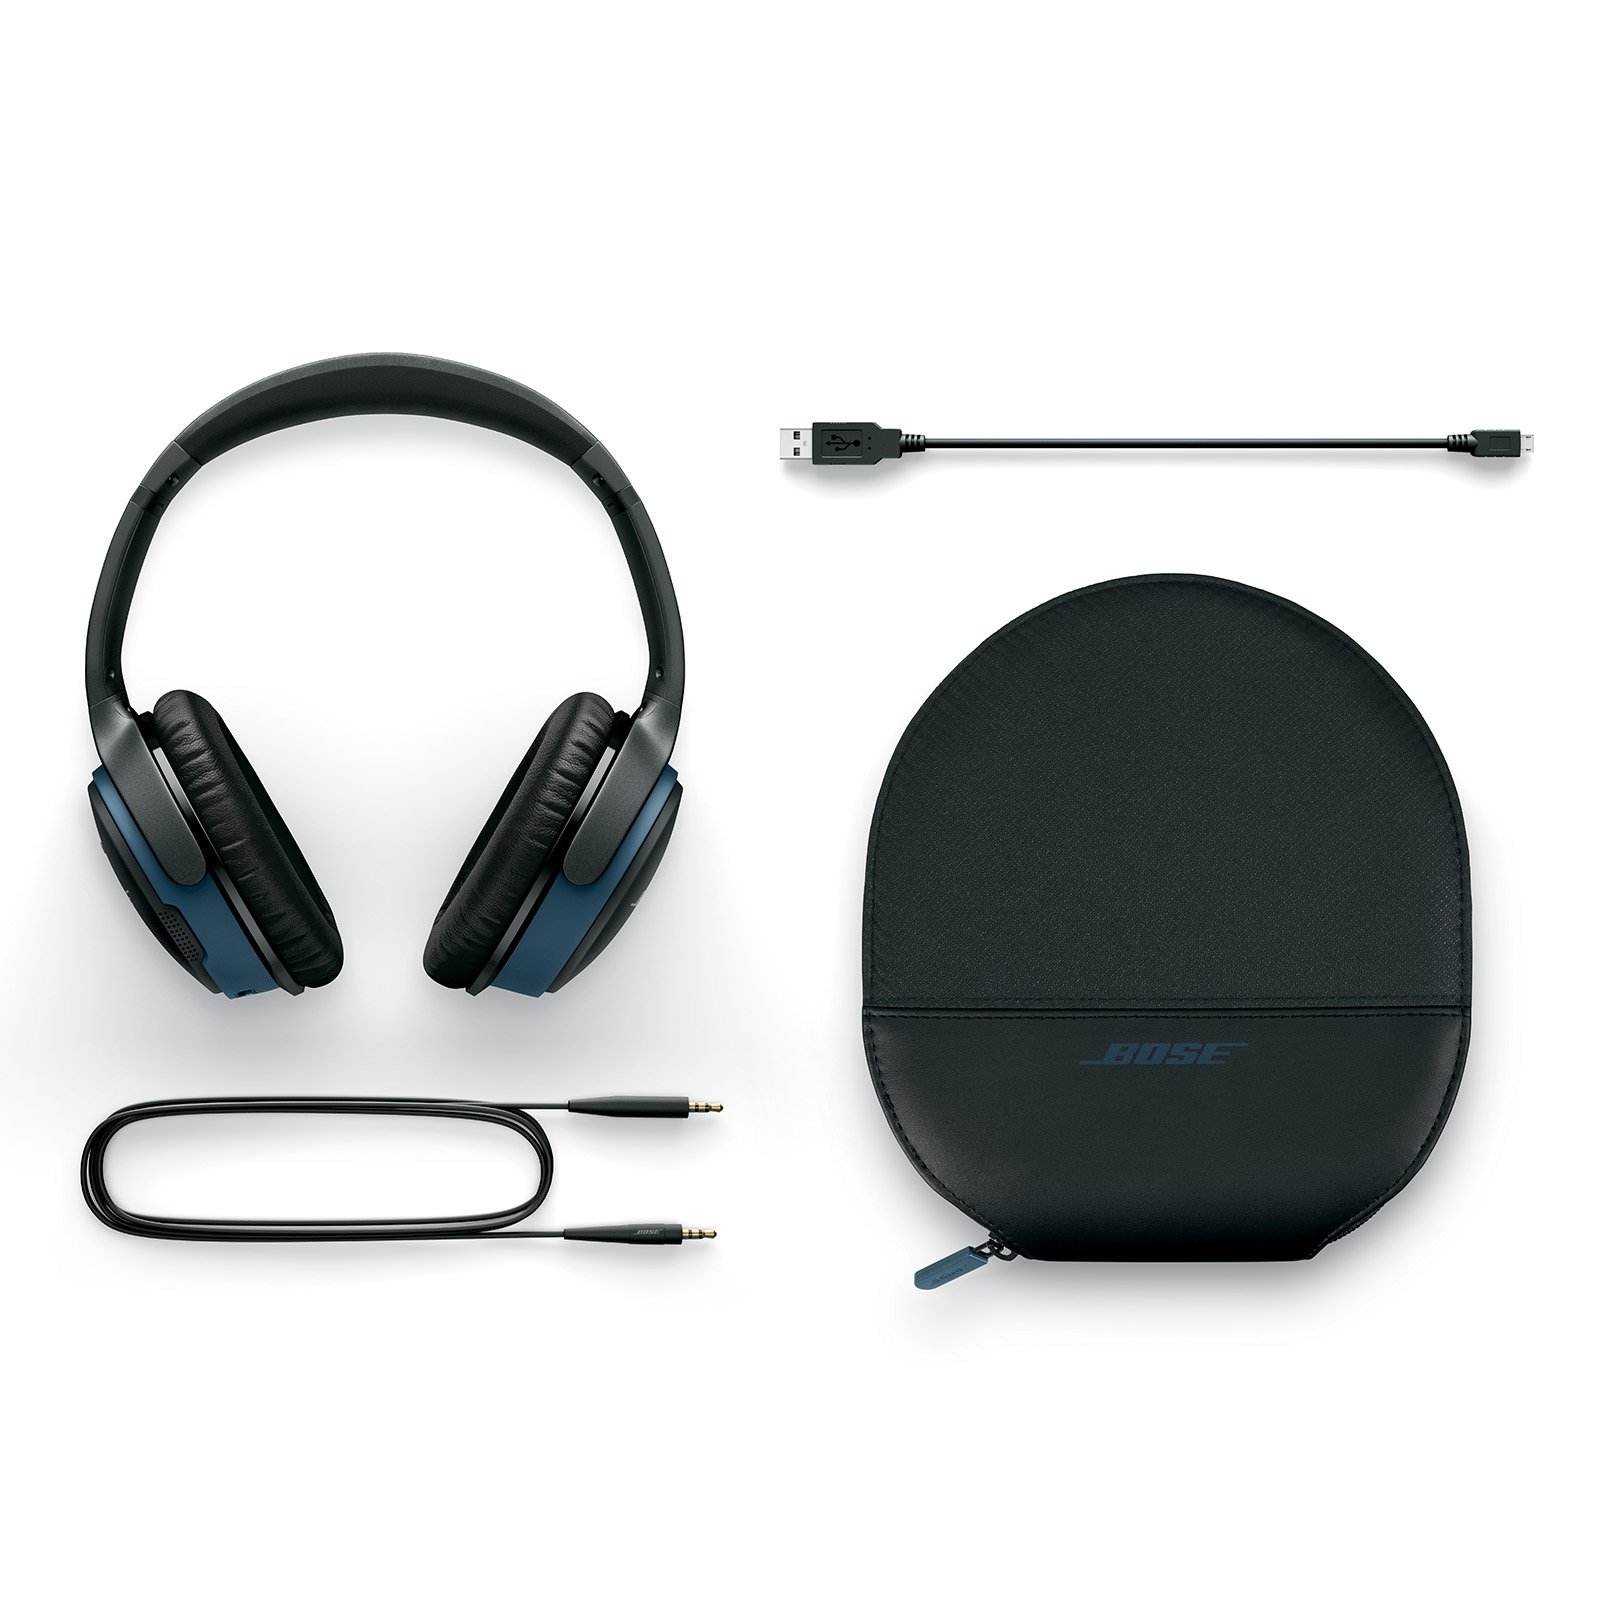 bose soundlink around ear wireless headphones ii black. Black Bedroom Furniture Sets. Home Design Ideas